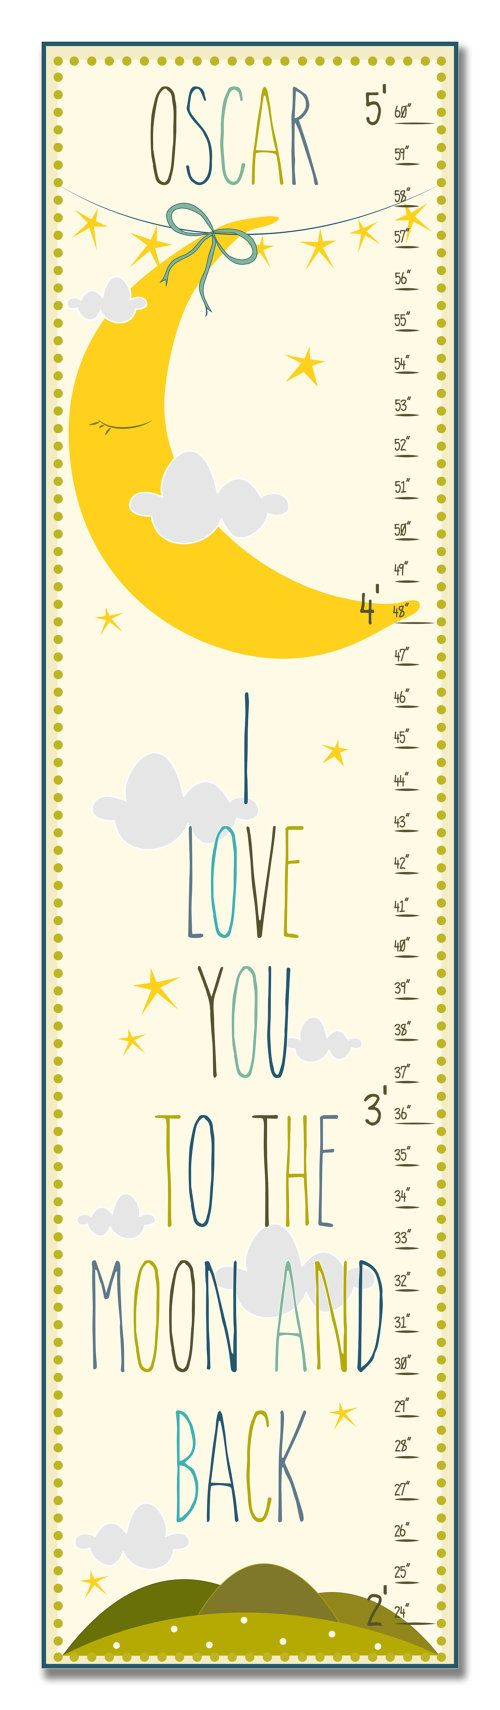 264 best childrens growth charts images on pinterest growth childrens growth chart ruler measure wall art i love you to the nvjuhfo Gallery